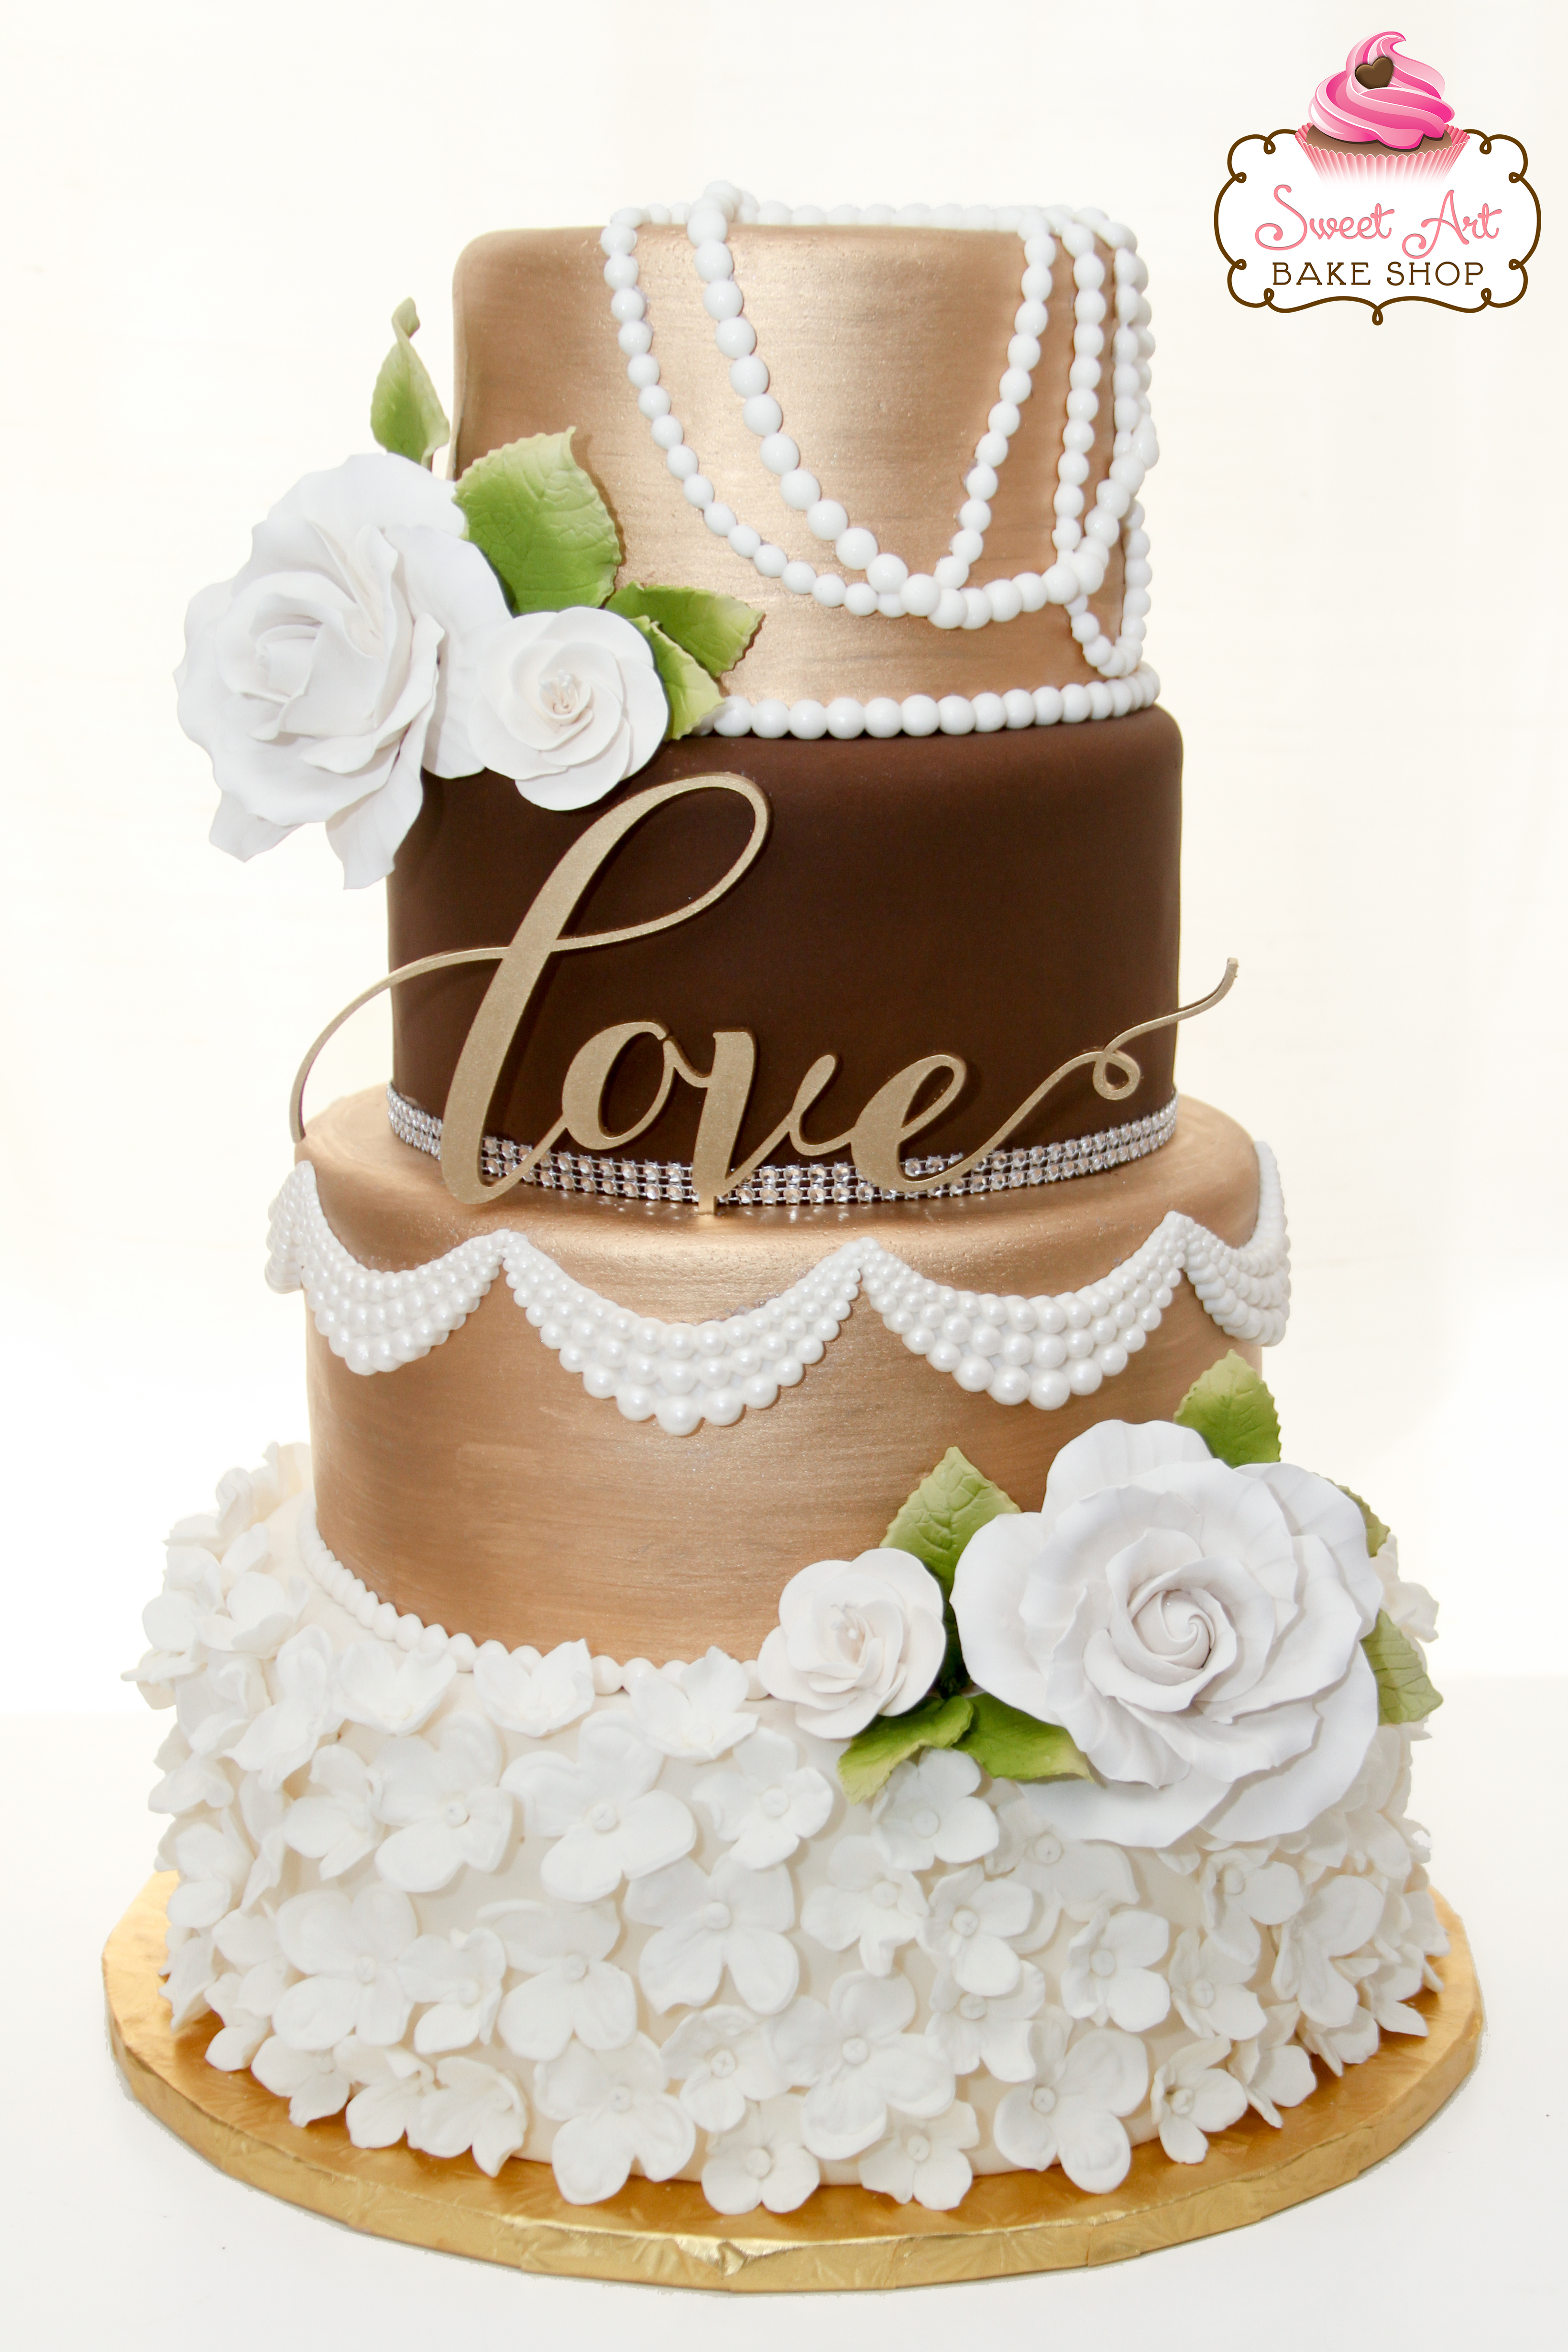 Karina & Gesler's Wedding Cake